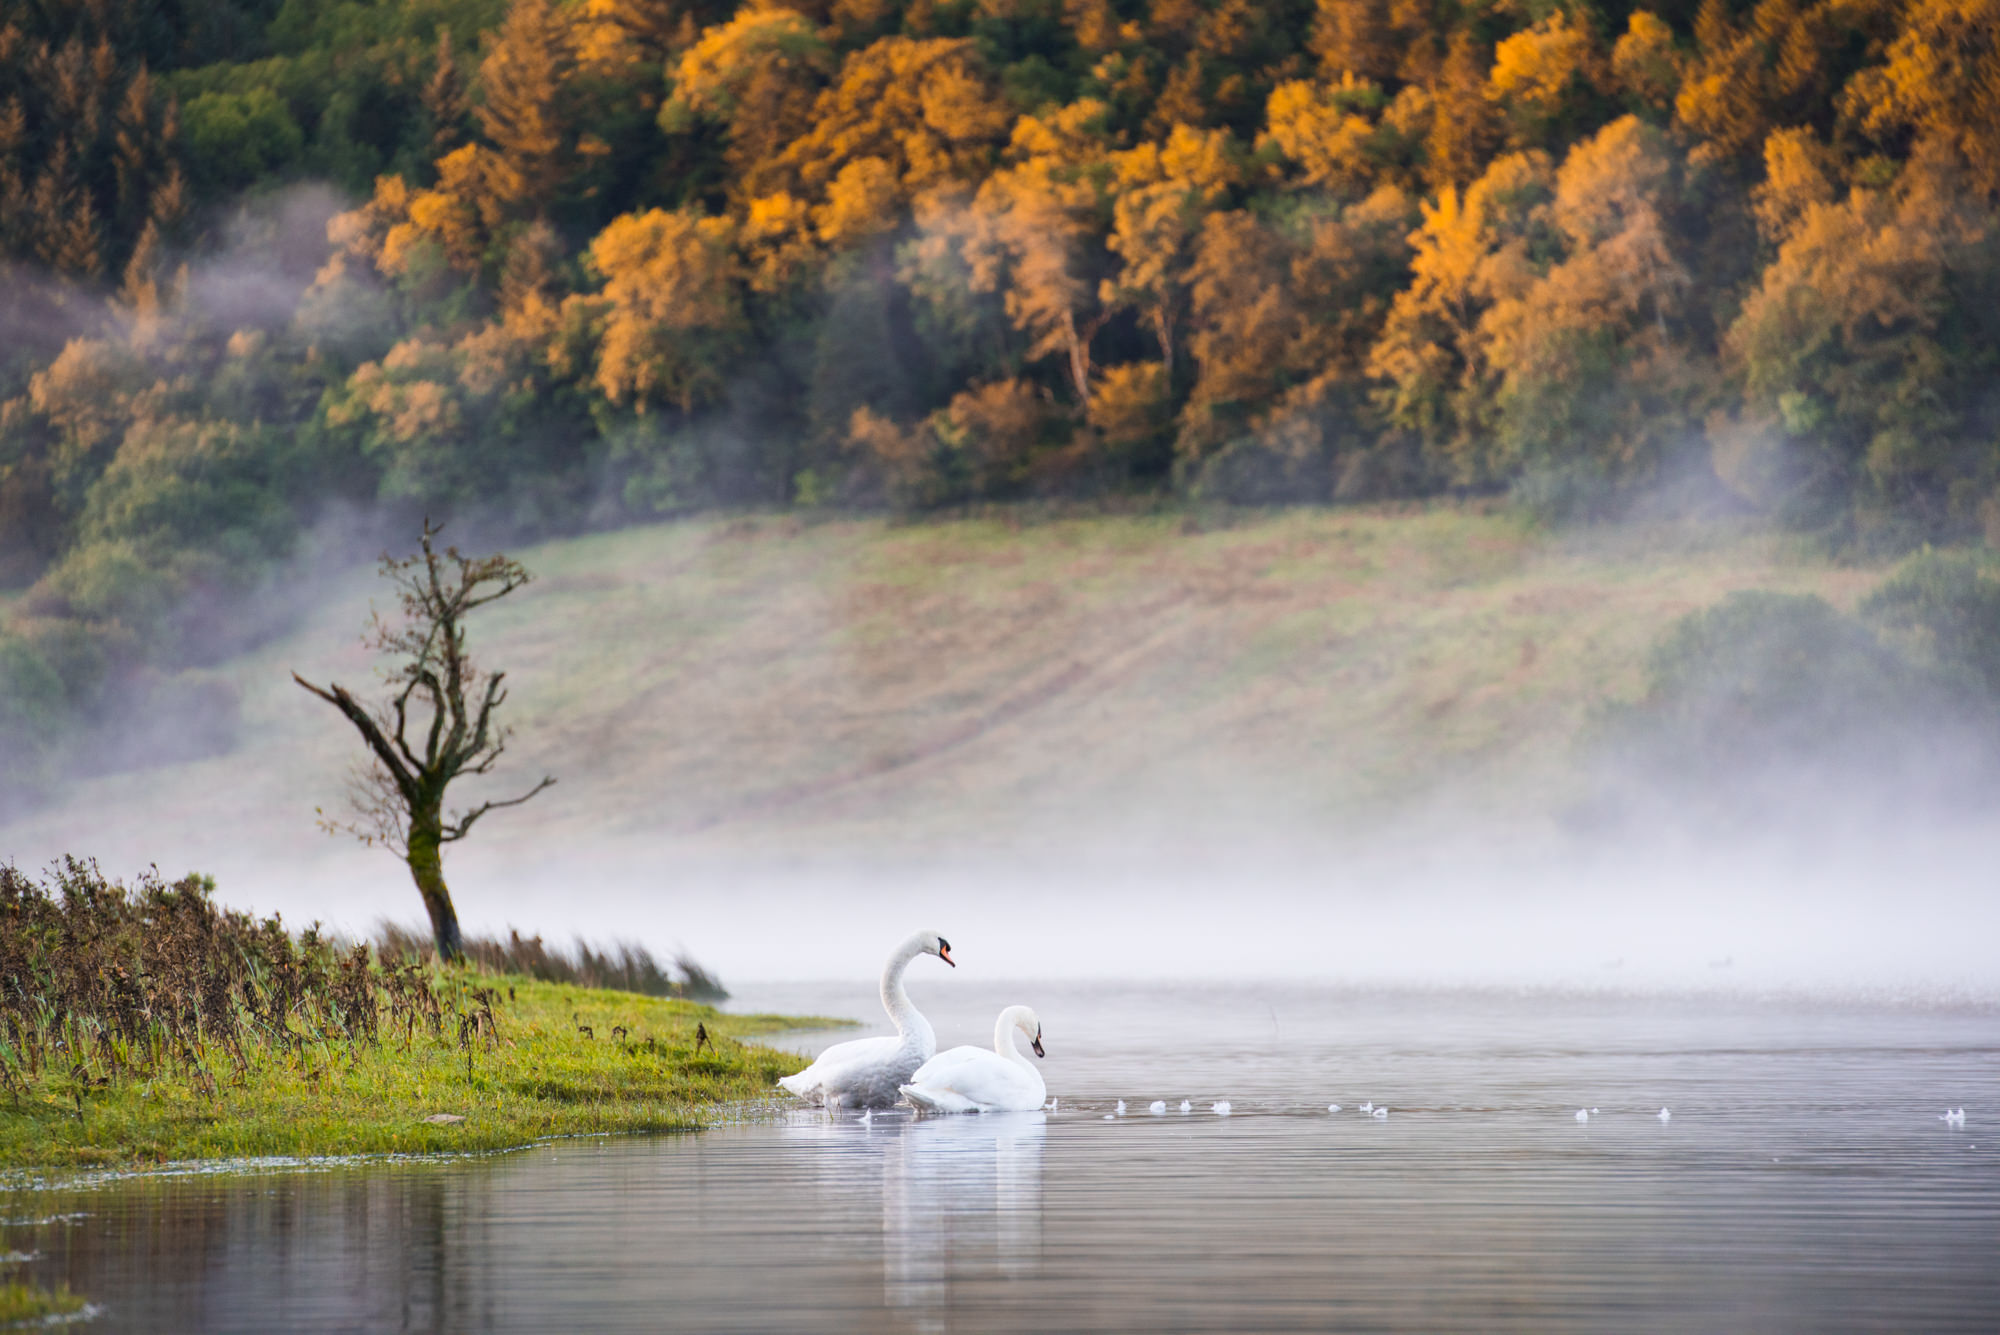 Swans in a misty lake at sunrise